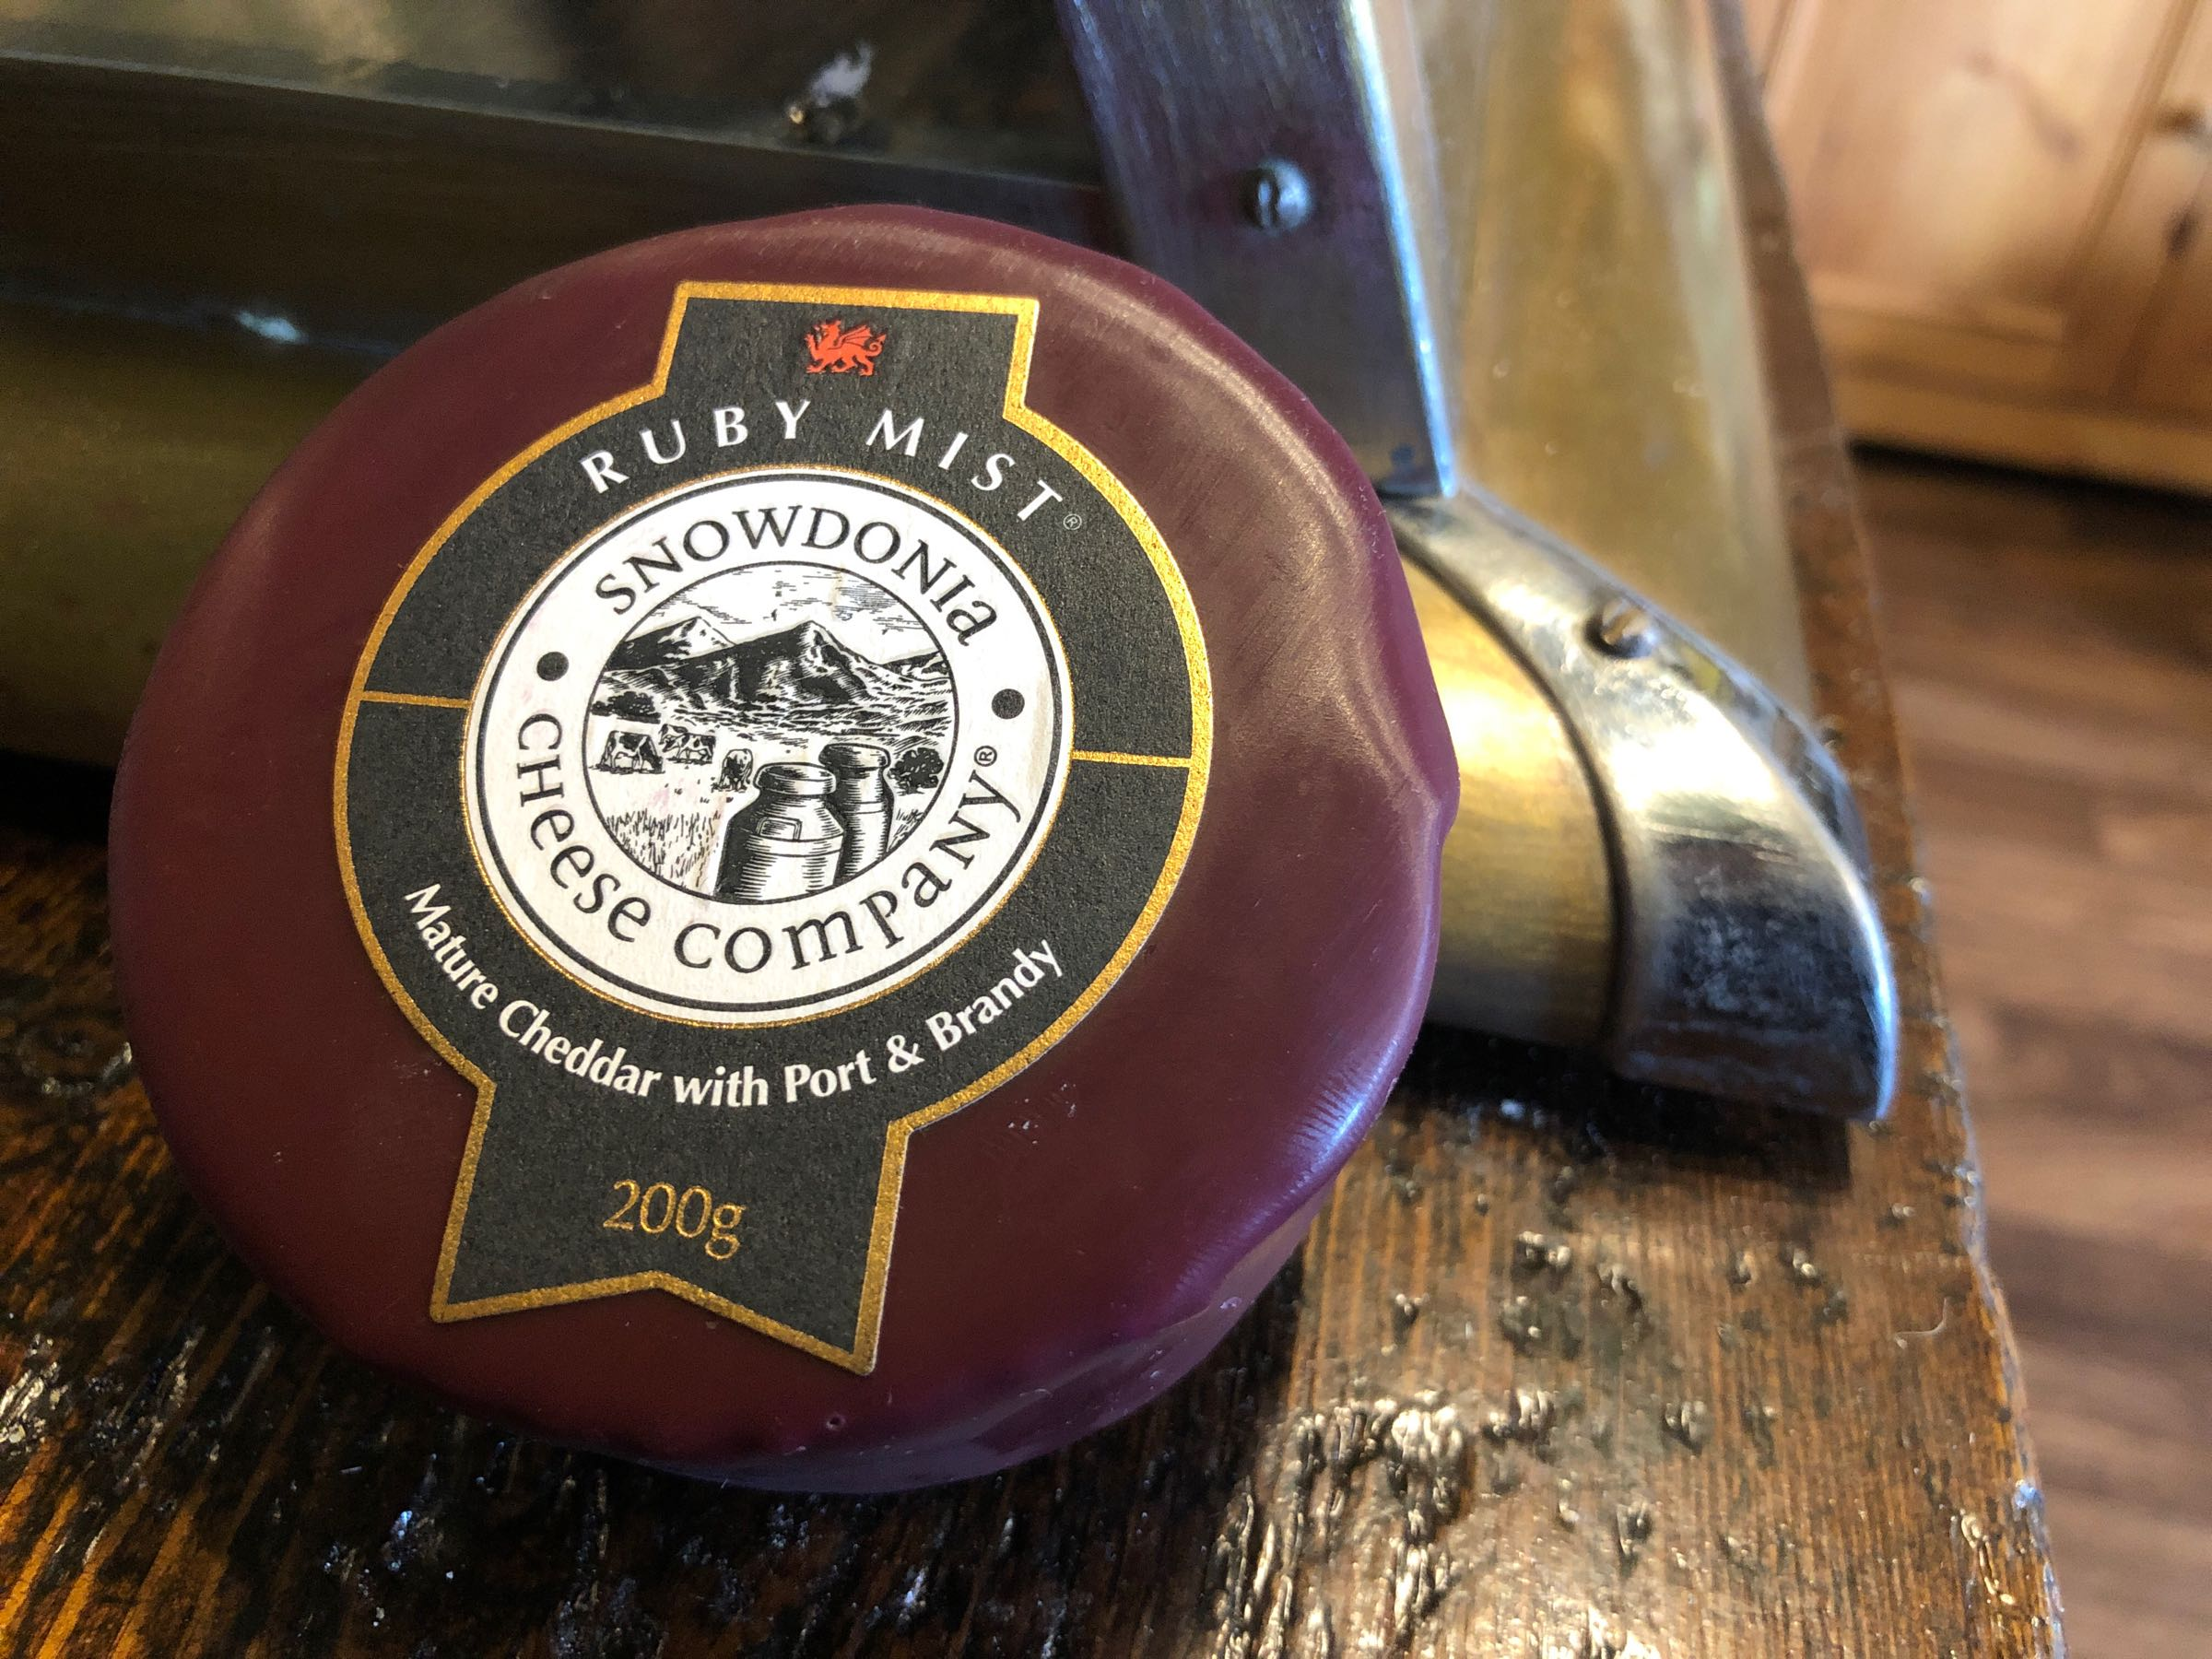 Snowdonia Cheese Co. Ruby Mist 200g